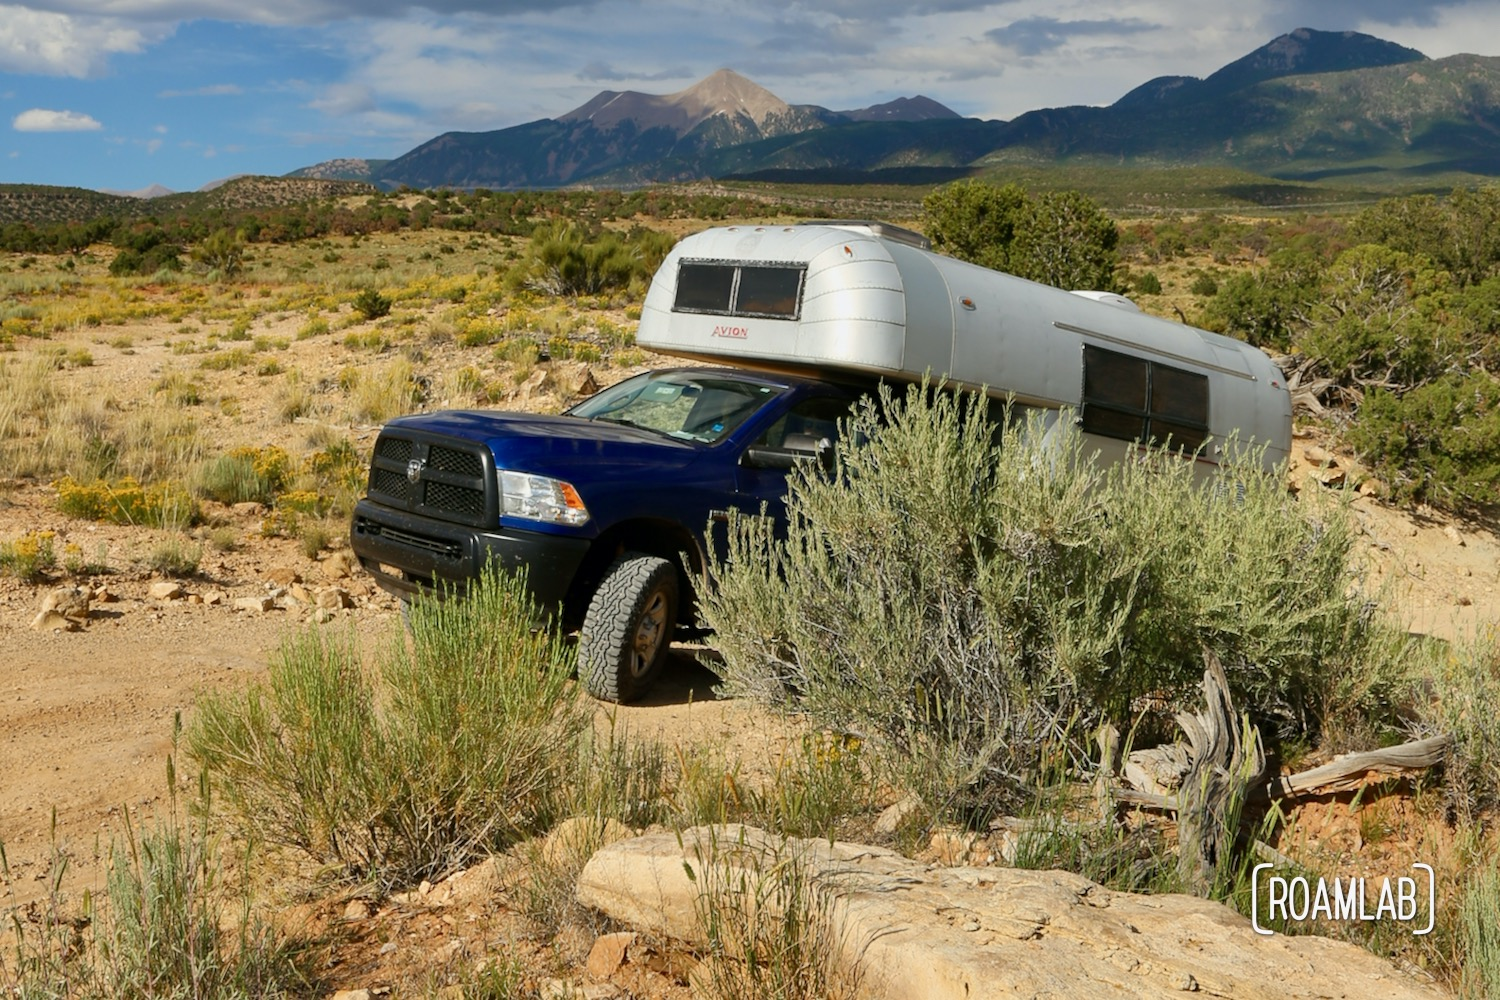 Vintage 1970 Avion C11 truck camper exploring the Utah desert on the Rimrocker off-road and OHV trail